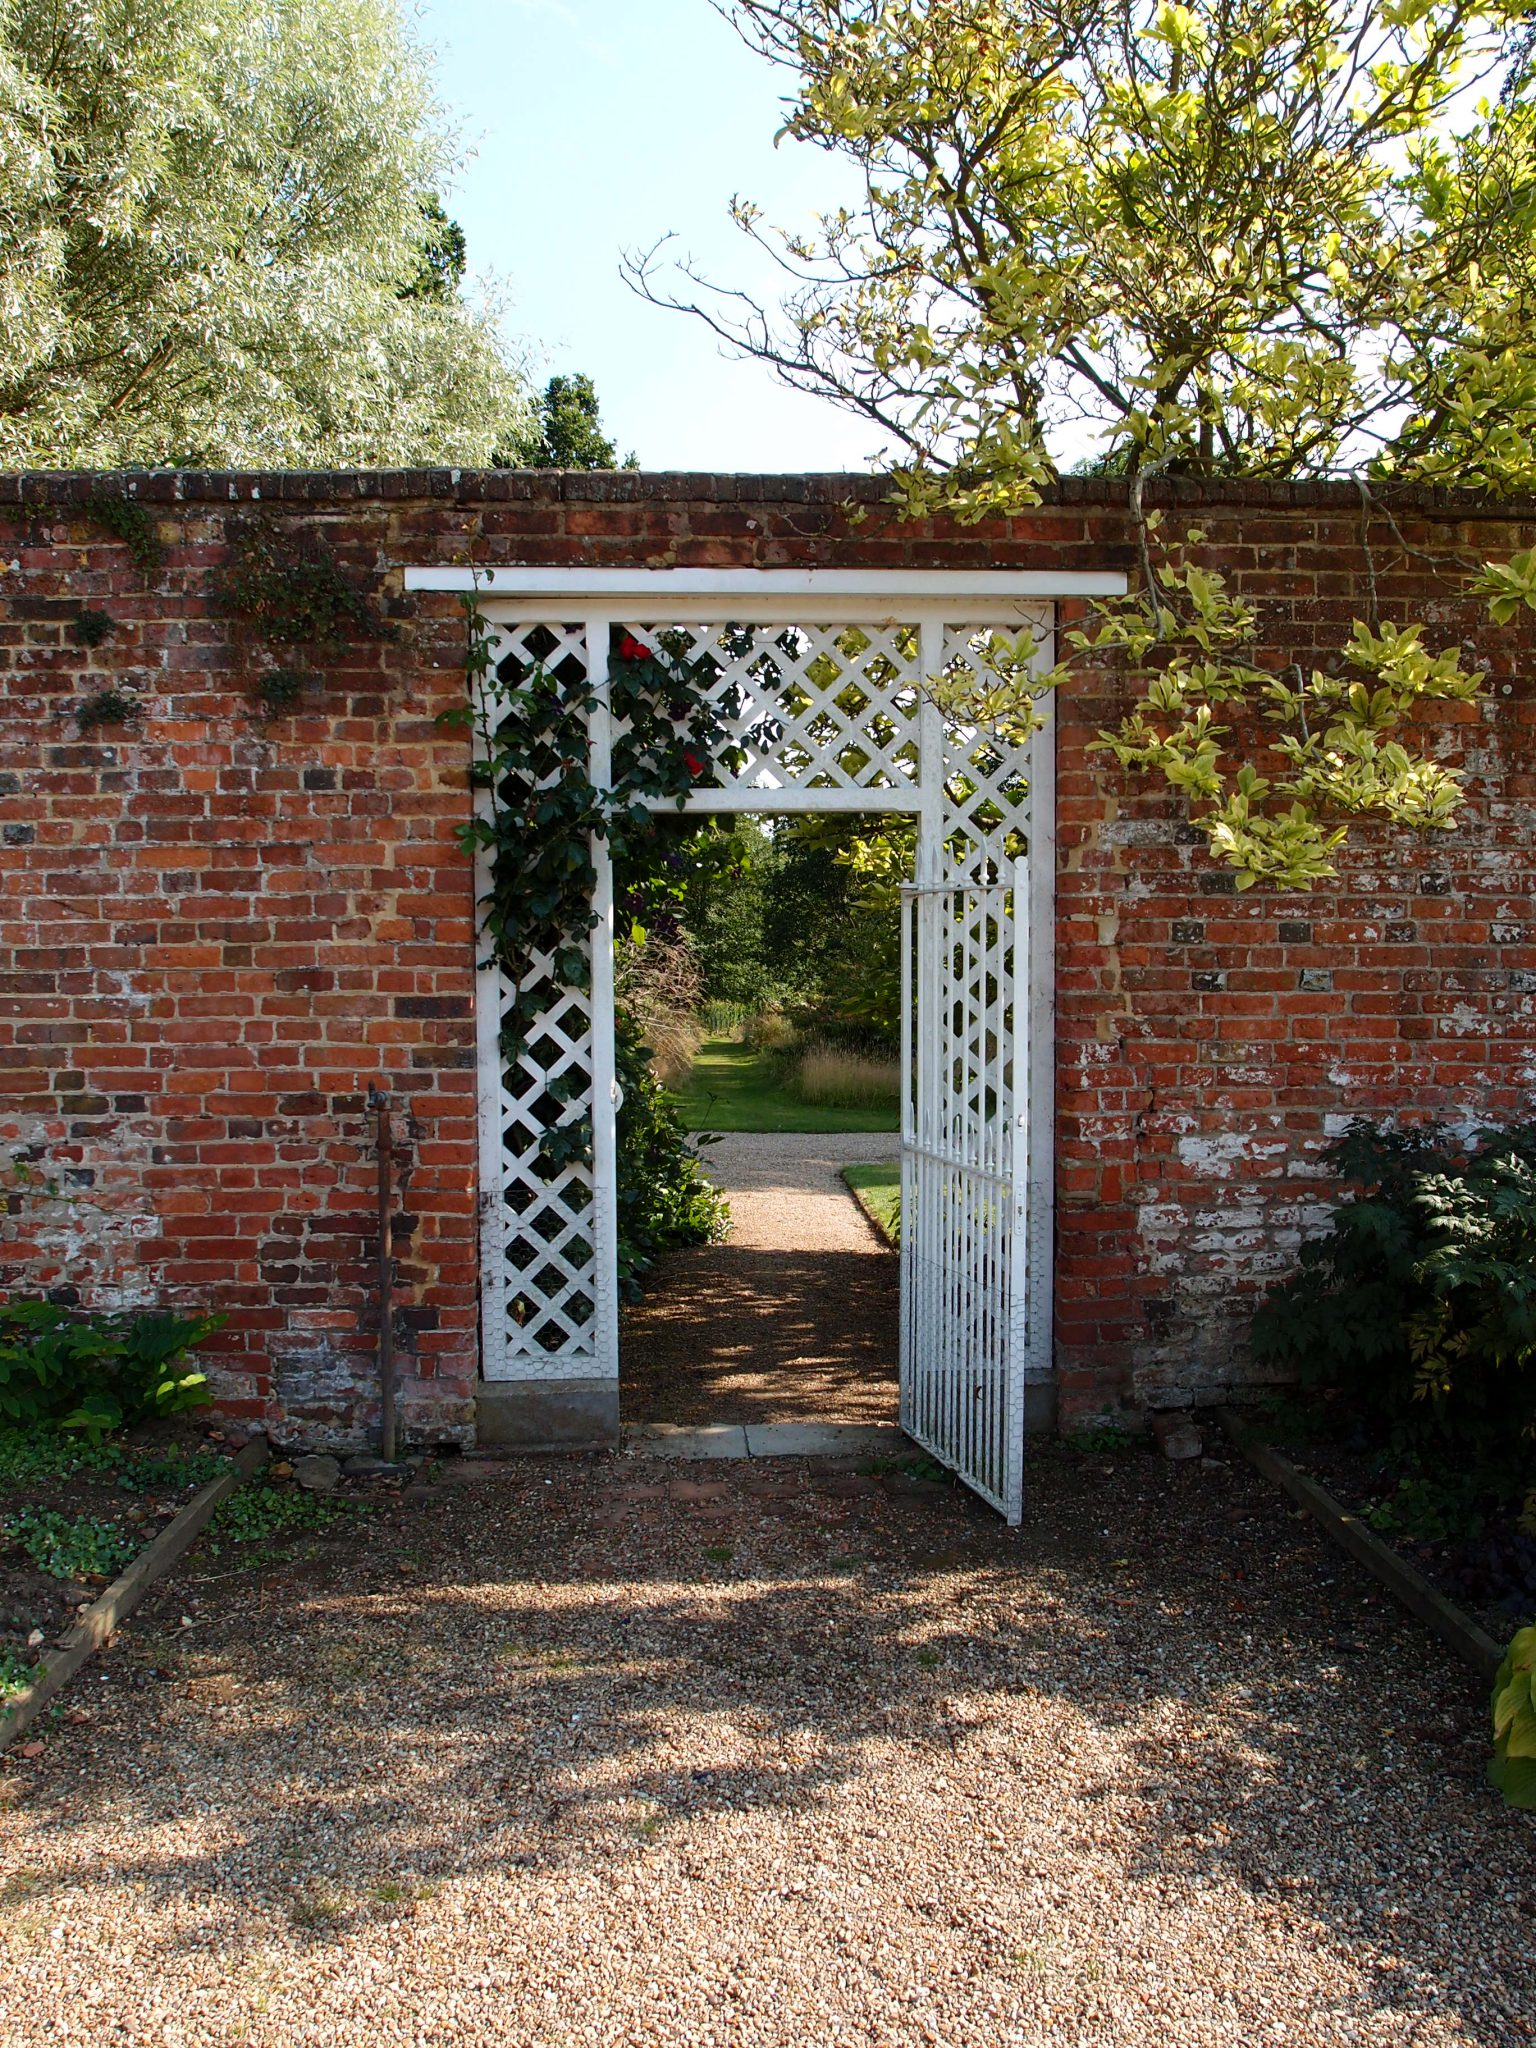 With more than a little regret, I admitted that it was time for us to leave Godinton's Gardens. We exited the Walled Garden....